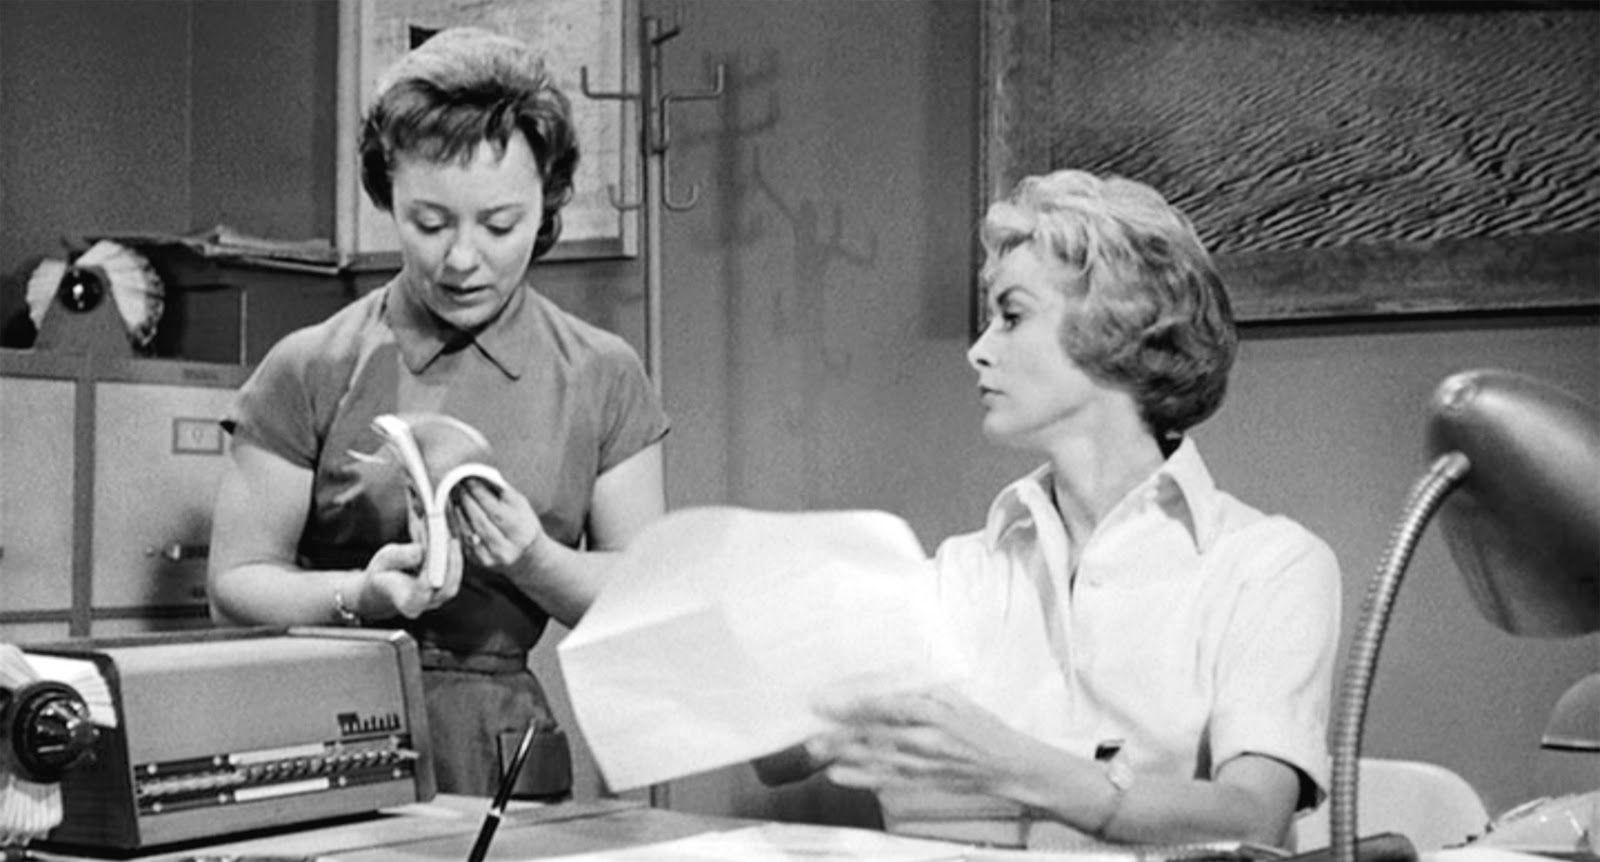 In the movie Psycho, Director Alfred's daughter - Patricia had a small role as Marion's co-worker, Caroline.